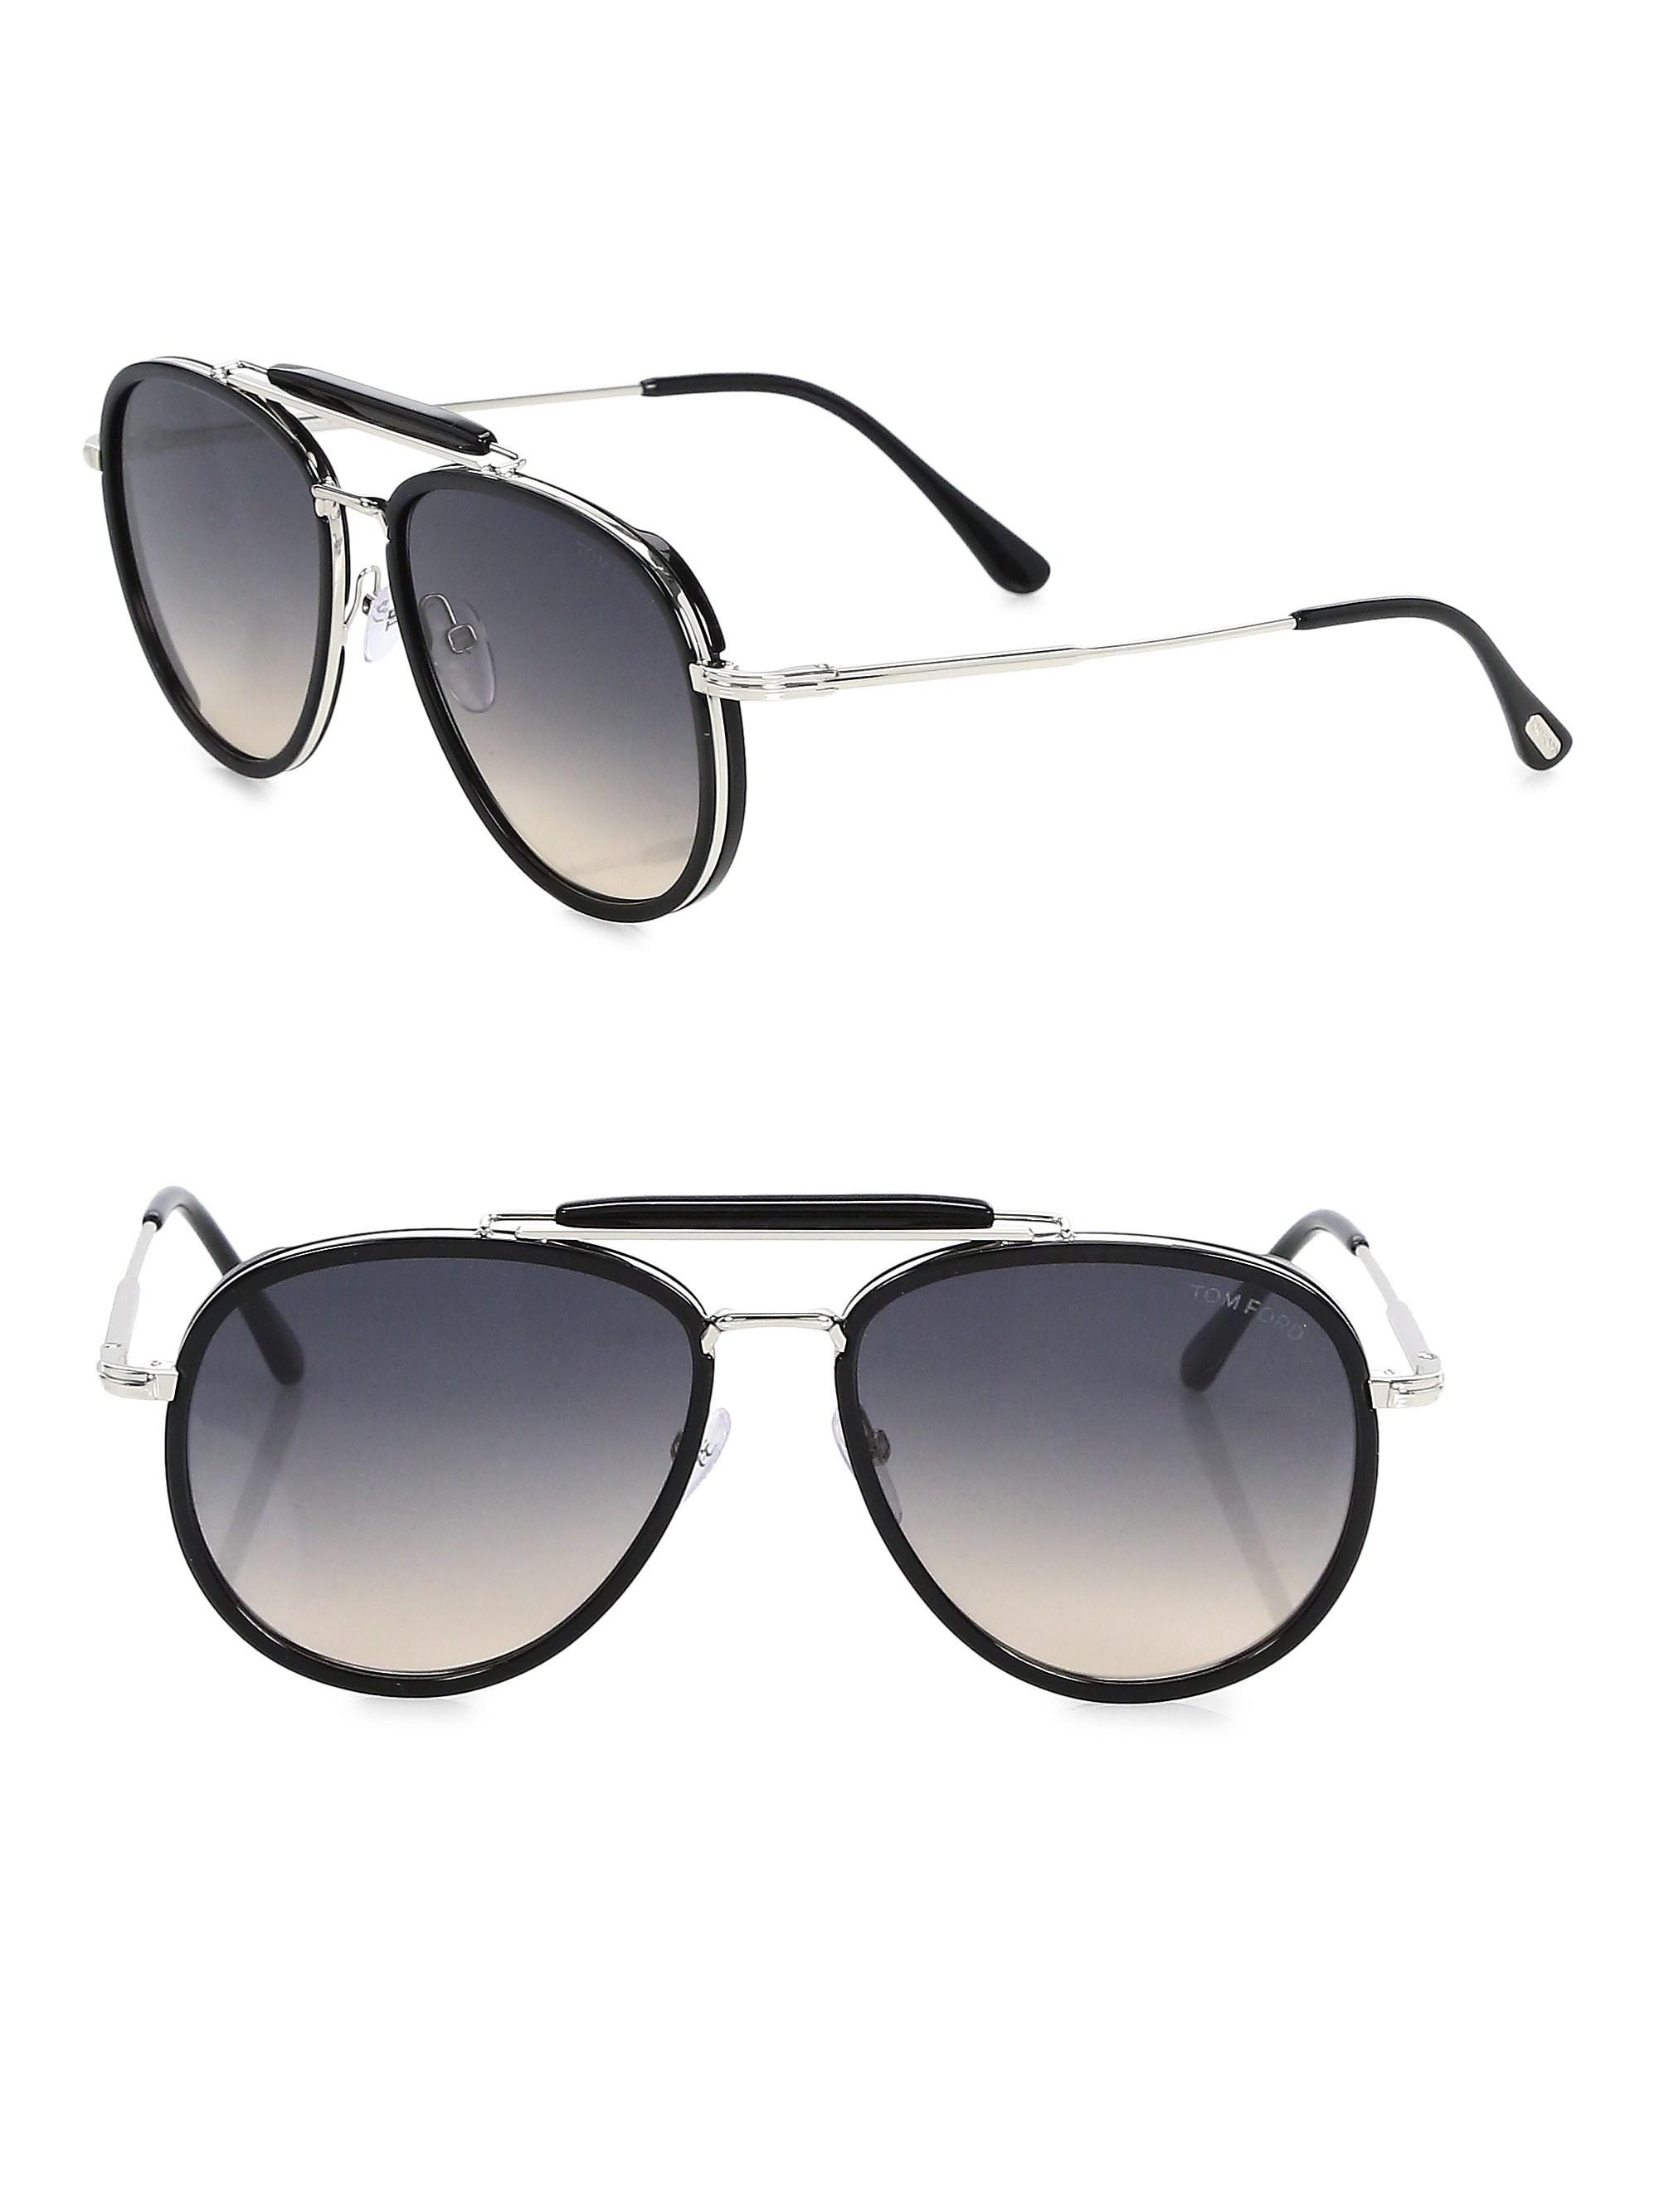 fd5012d26f7 Tom Ford Men s Tripp 58mm Aviator Sunglasses - Black in Black for ...